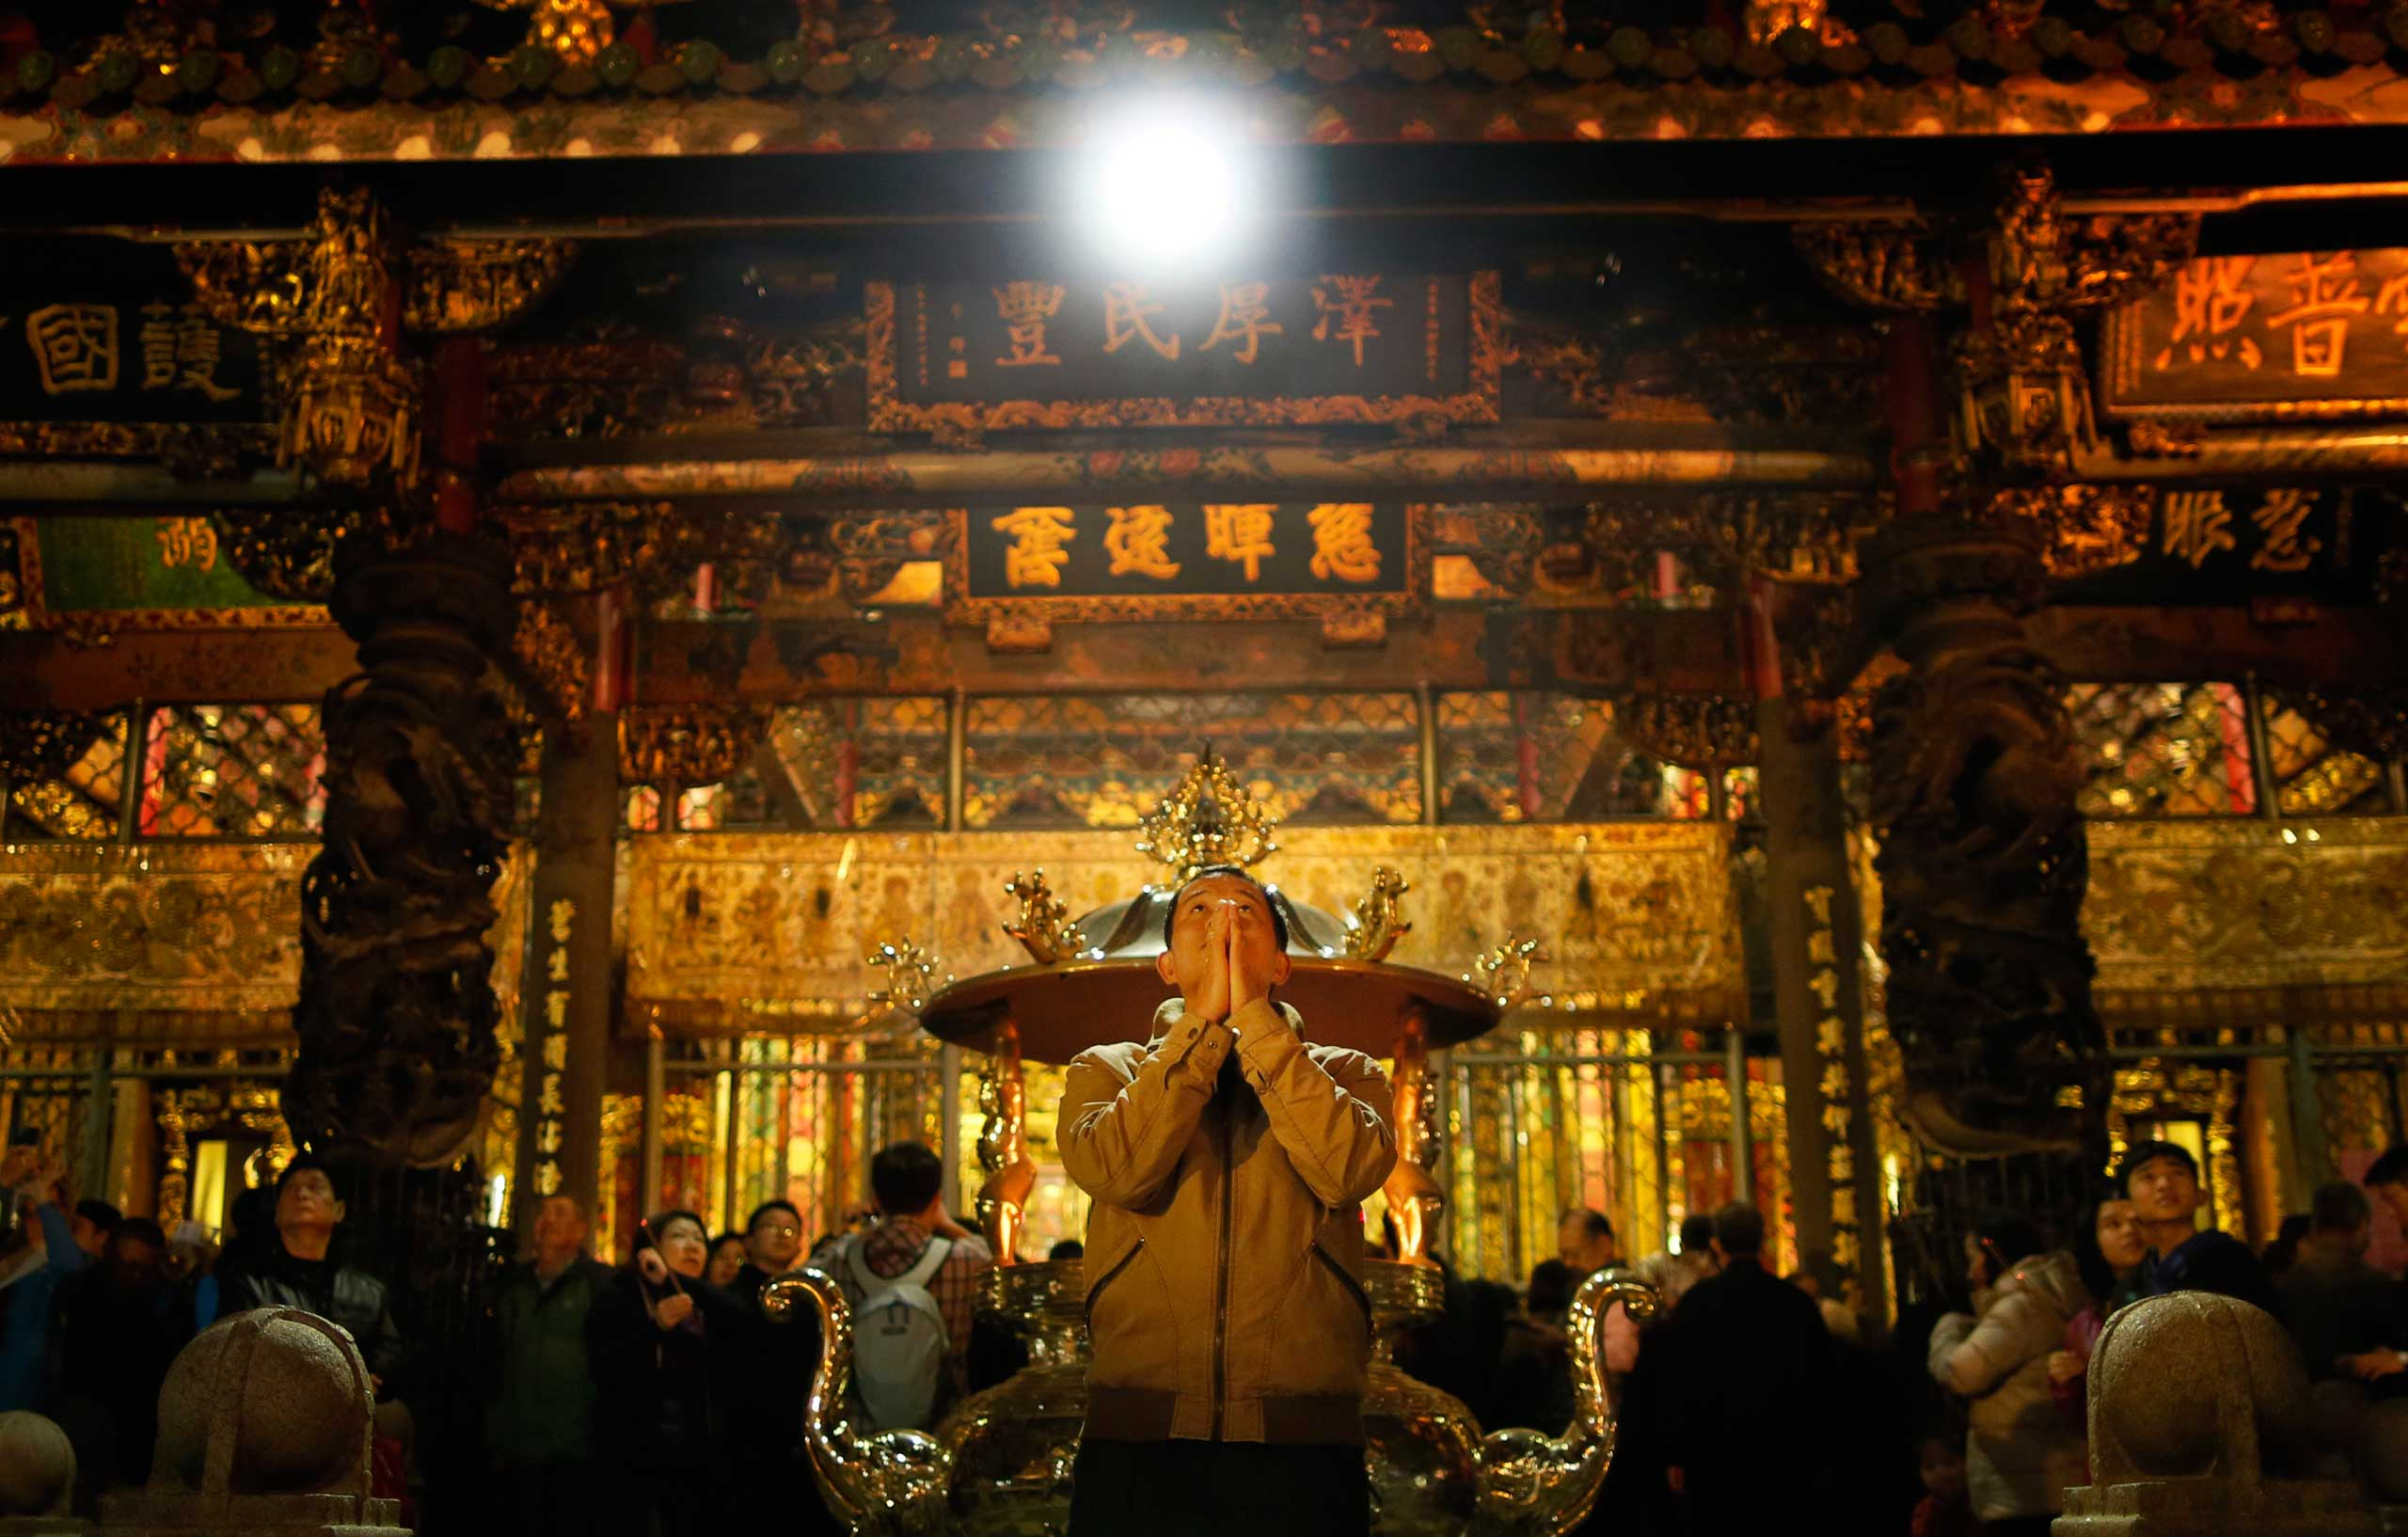 A devotee prays on the eve of the Lunar New Year at the Lungshan Temple in Taipei, Taiwan, Feb. 18, 2015.